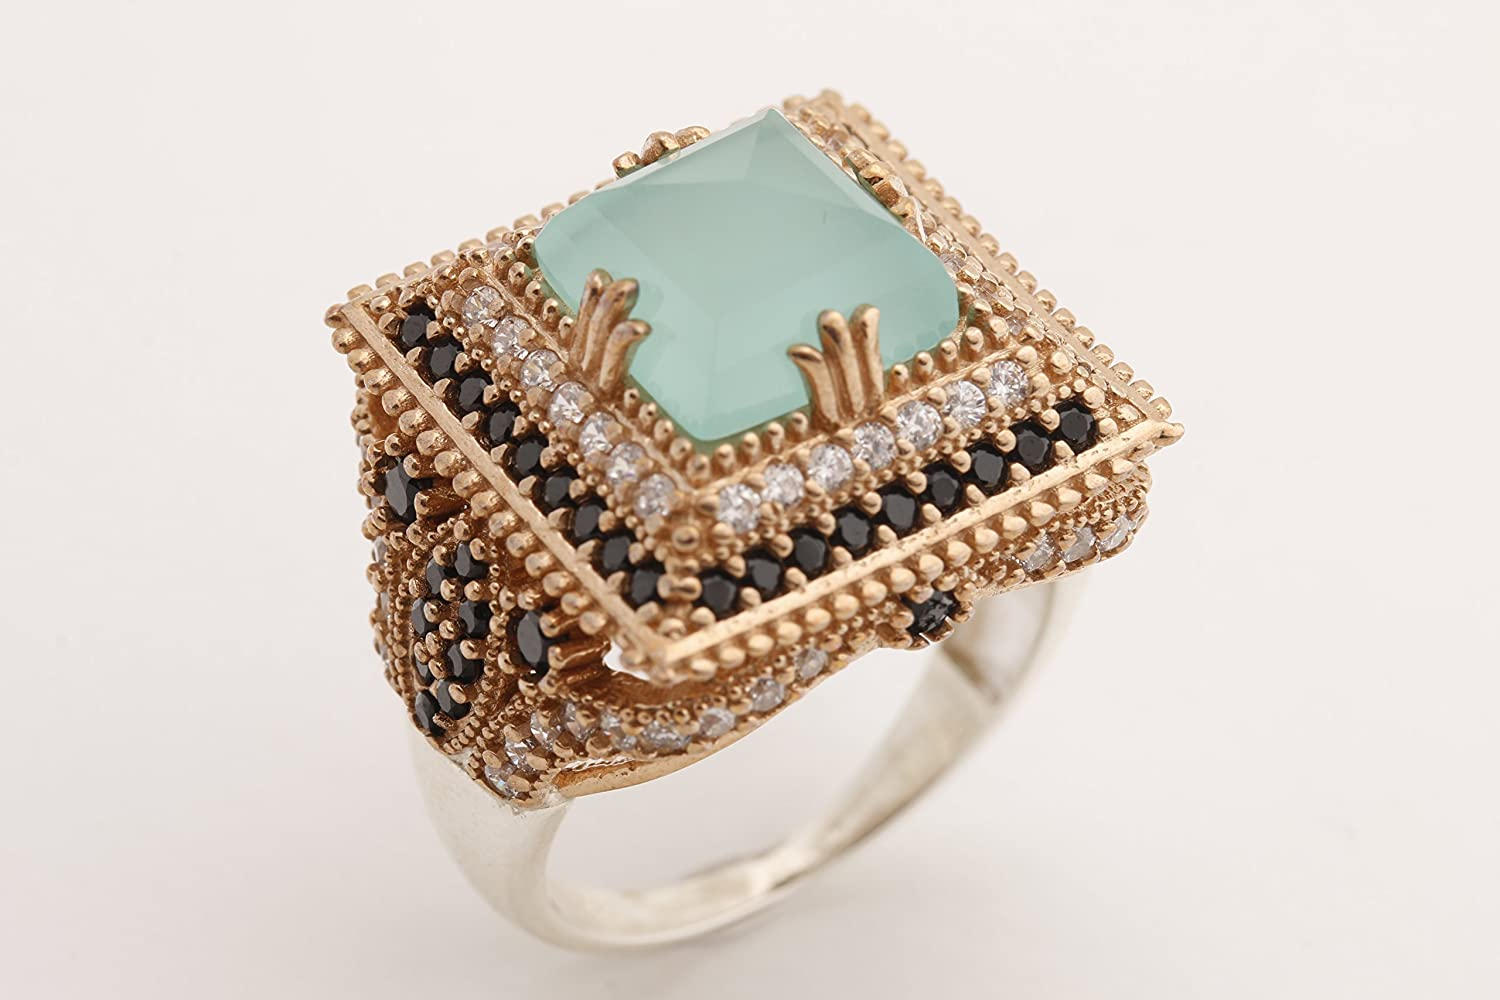 Turkish Handmade Jewelry Square Shape Aquamarine and Round Cut Black and White Zircon Topaz 925 Sterling Silver Ring Size Option